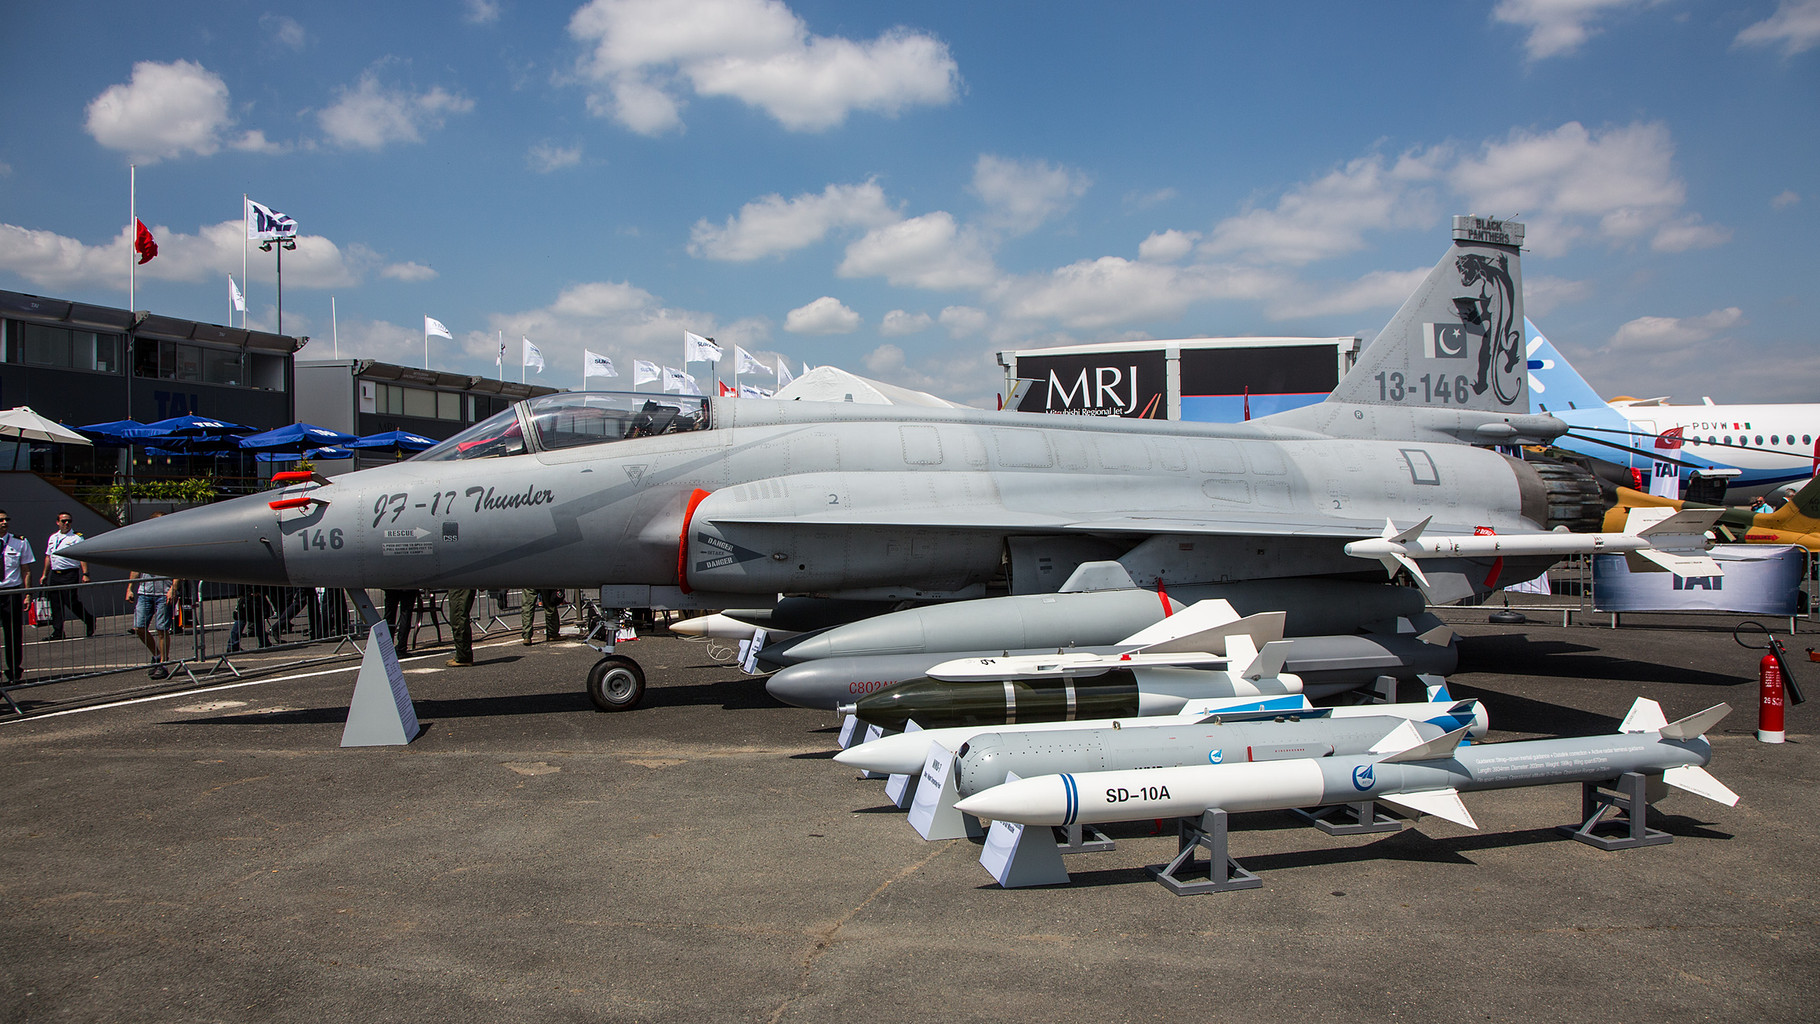 13-146, die Chengdu JF-17 Thunder im Static Display